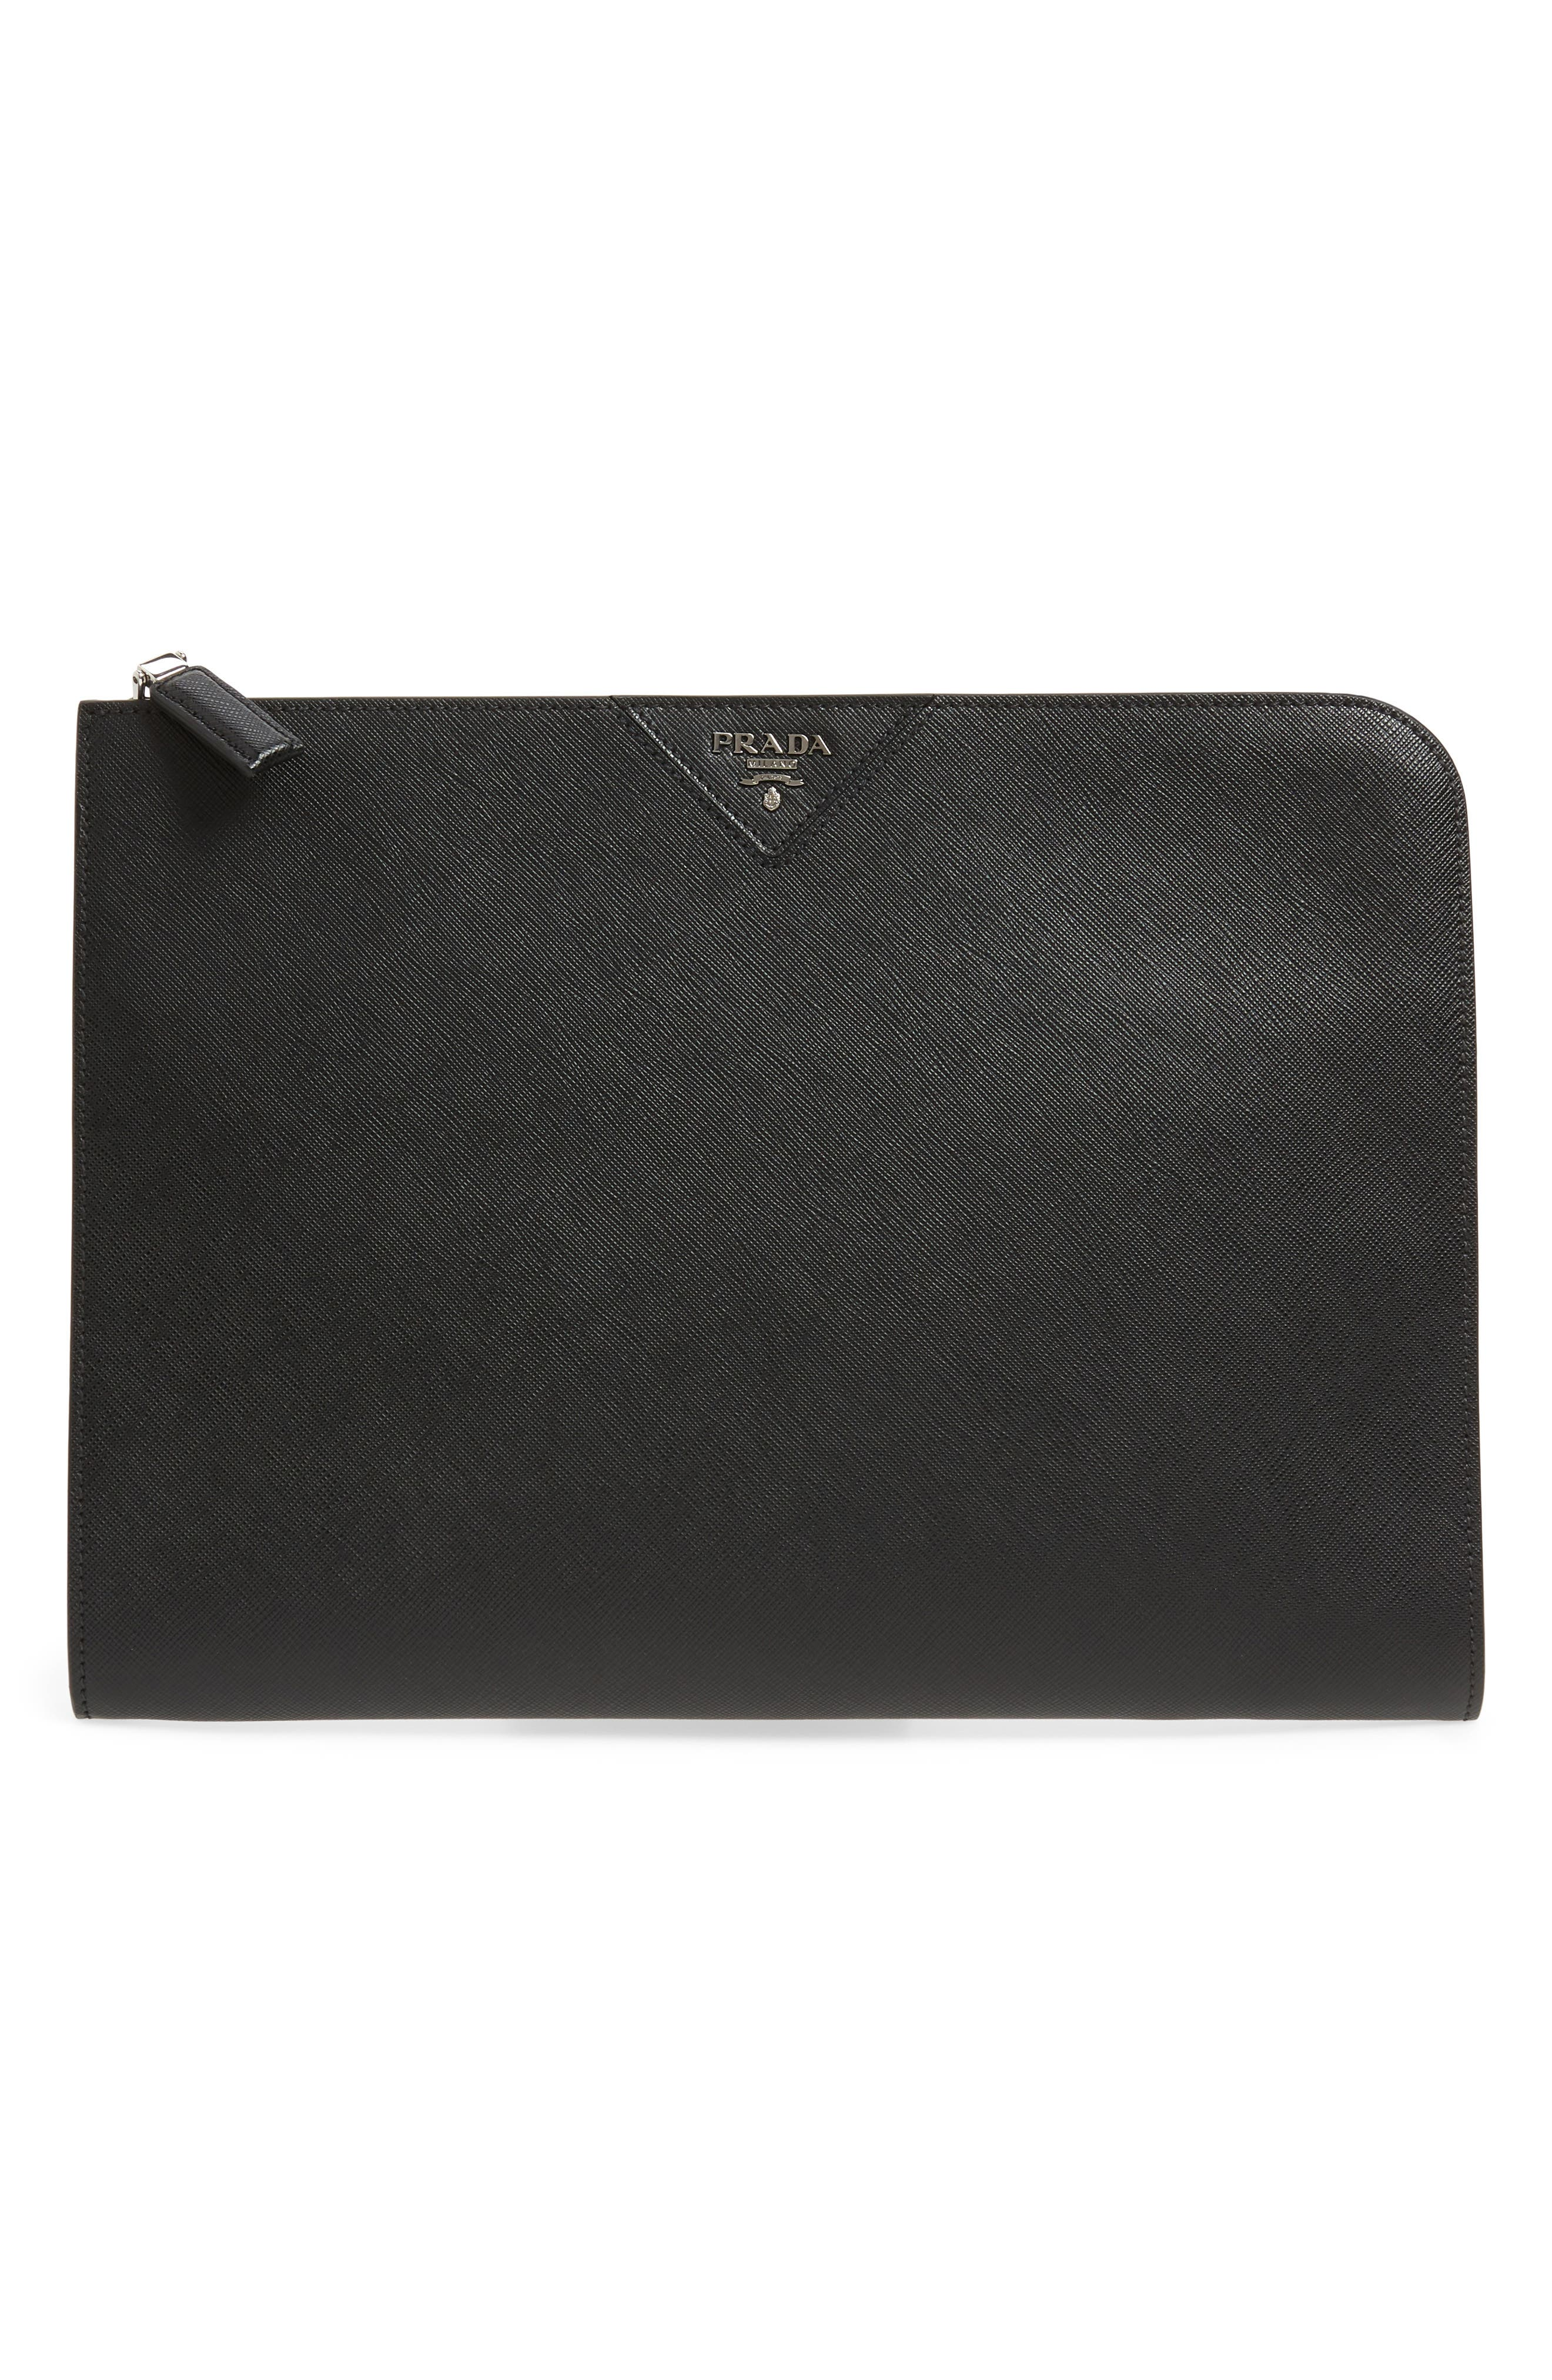 Prada Saffiano Leather Zip Folio